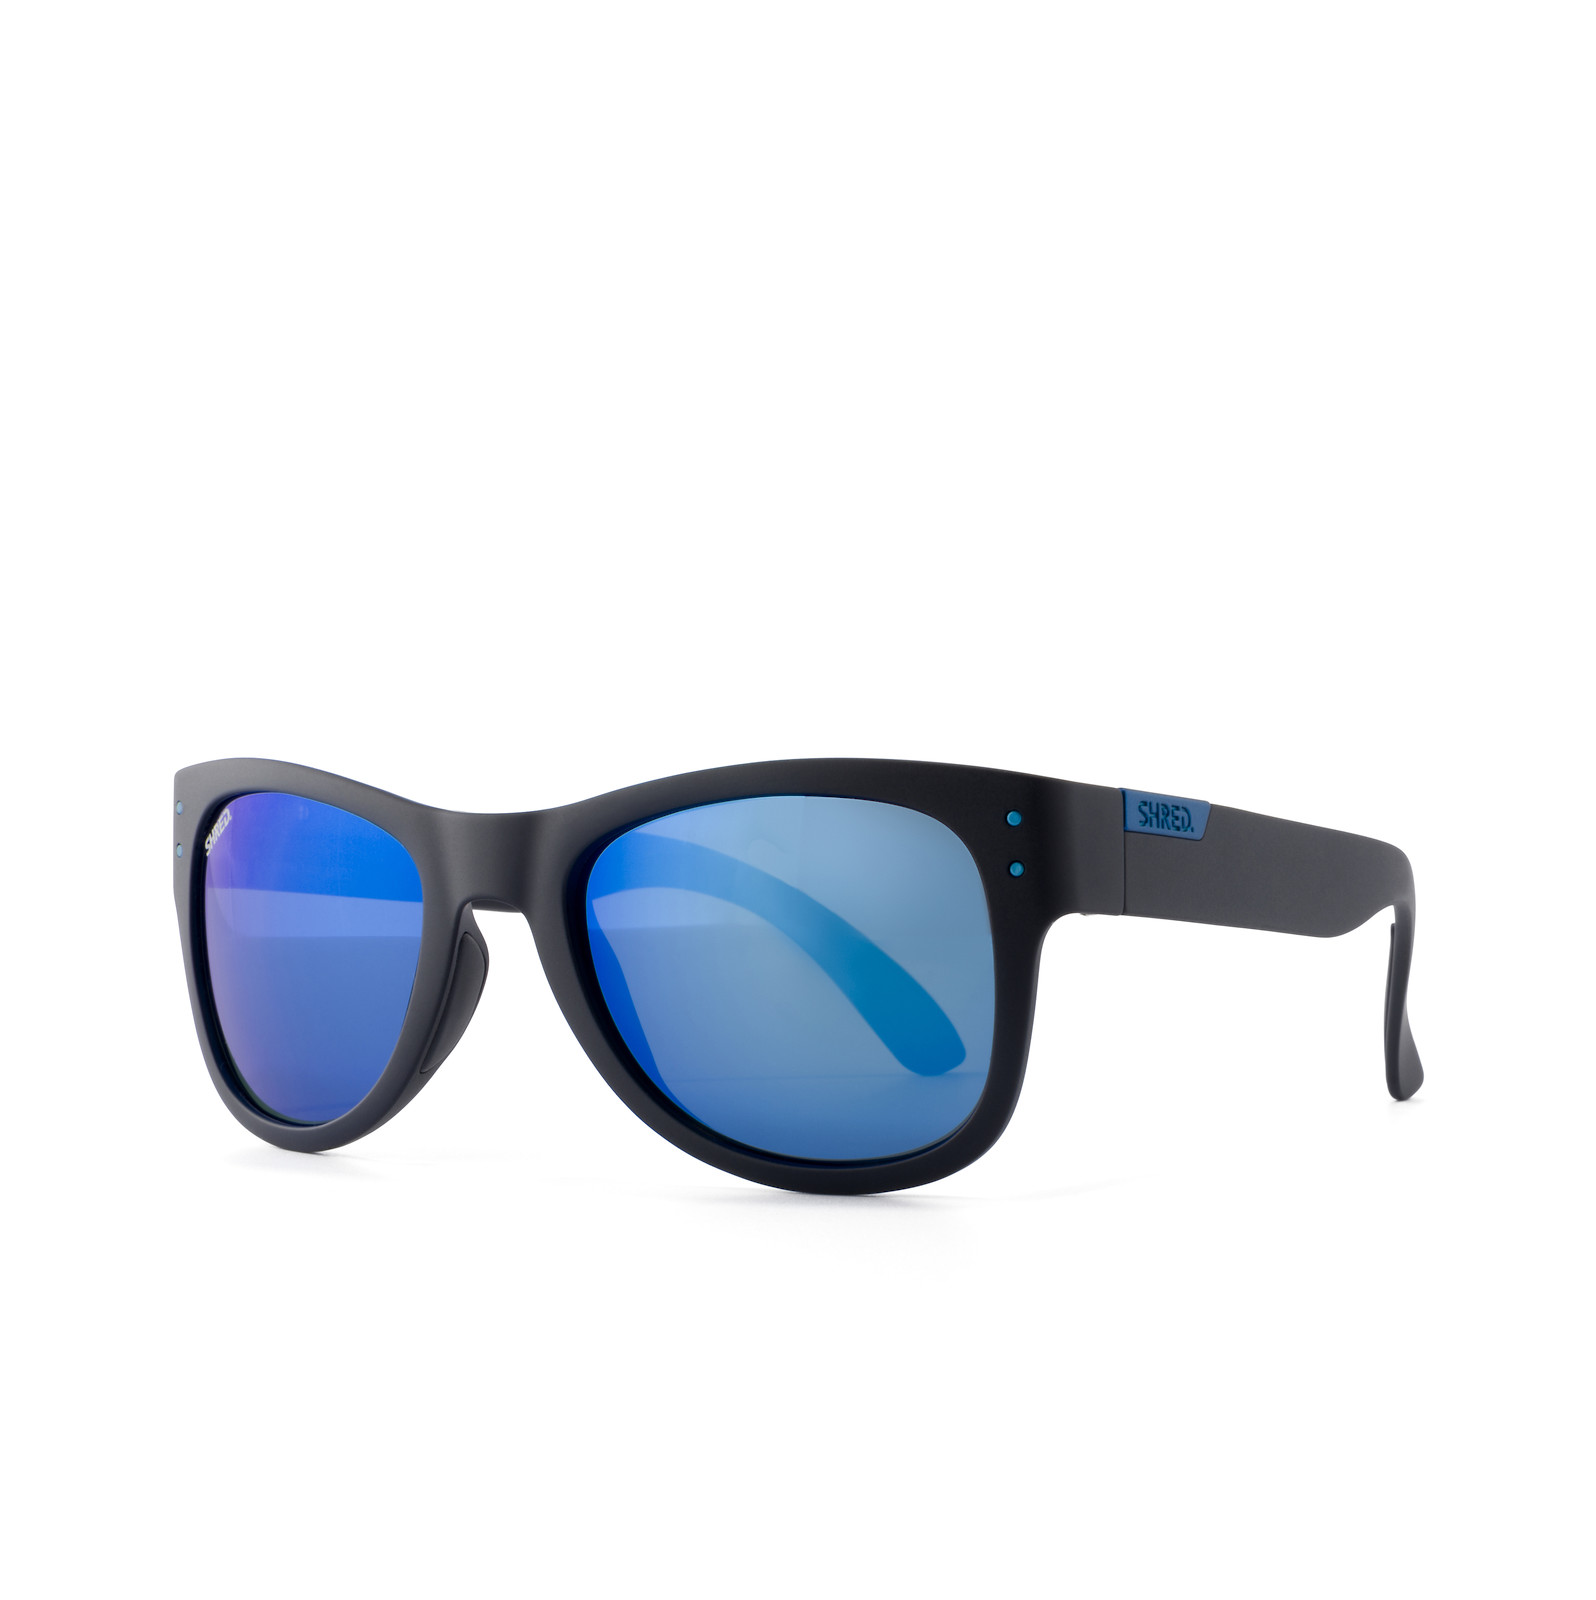 SHRED. Belushki - Black/Blue CBL Polarized Sky